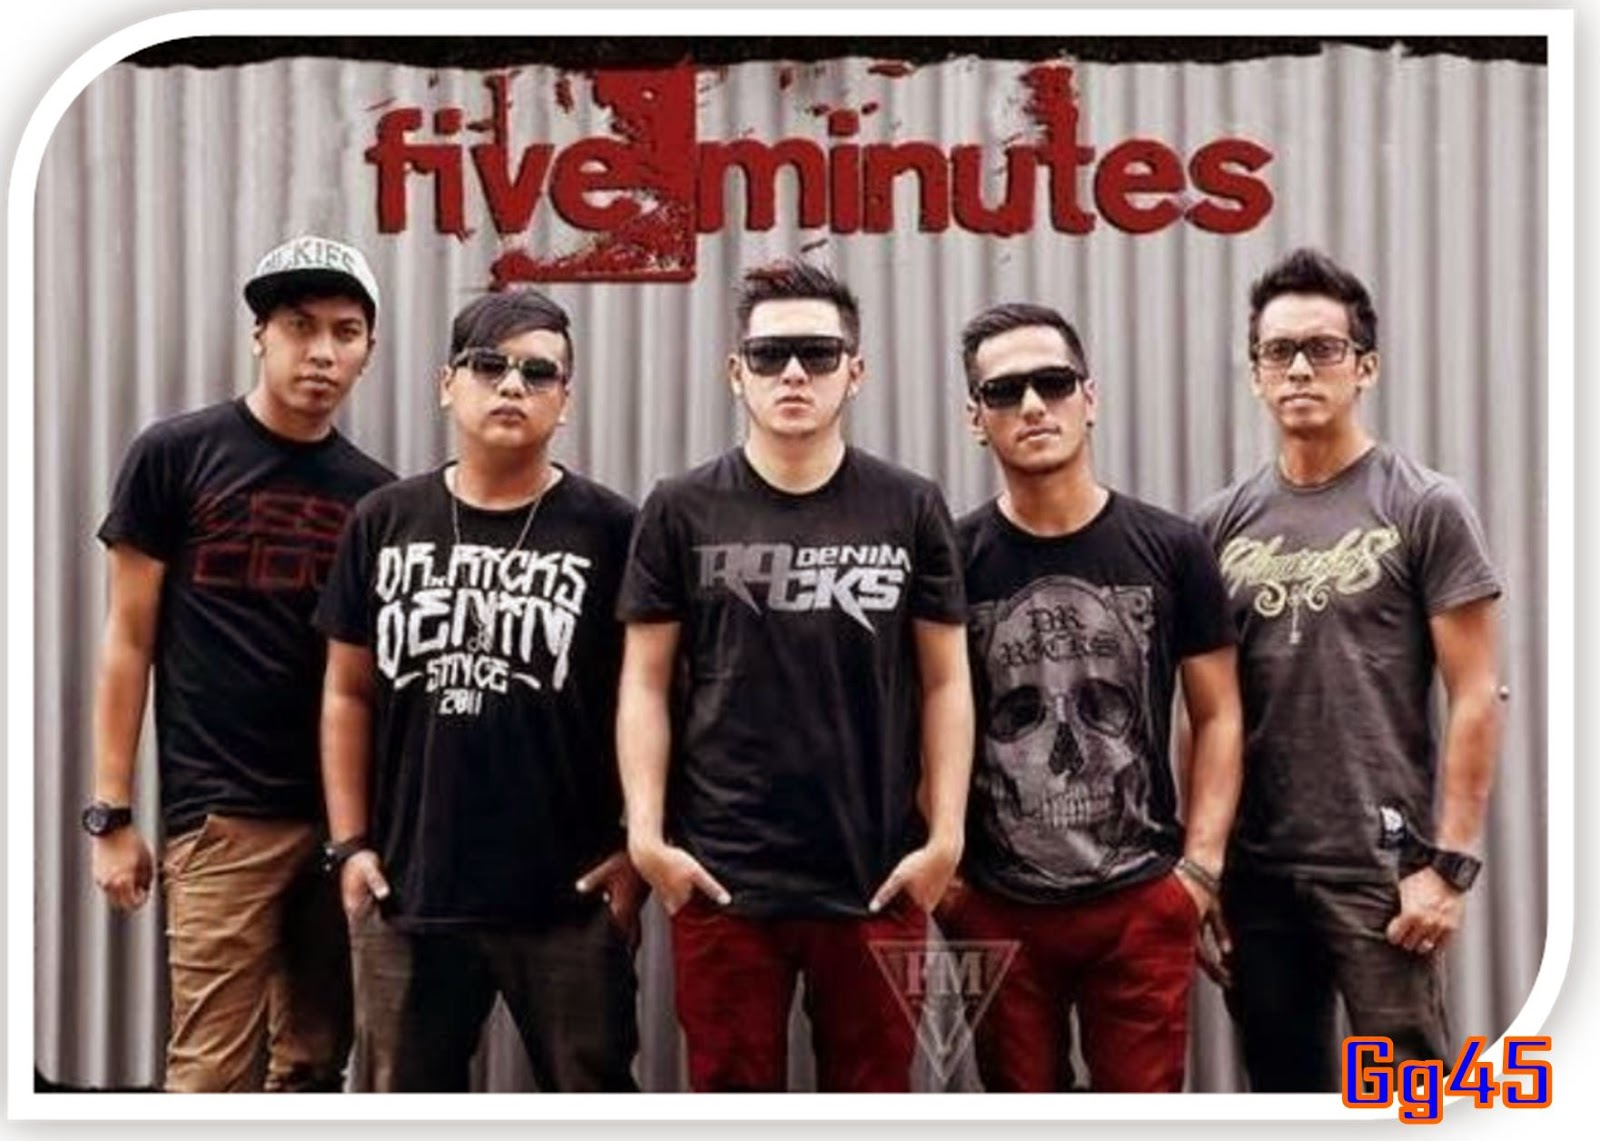 Download image Five Minutes Mp3 Indonesia Terbaru PC, Android, iPhone ...